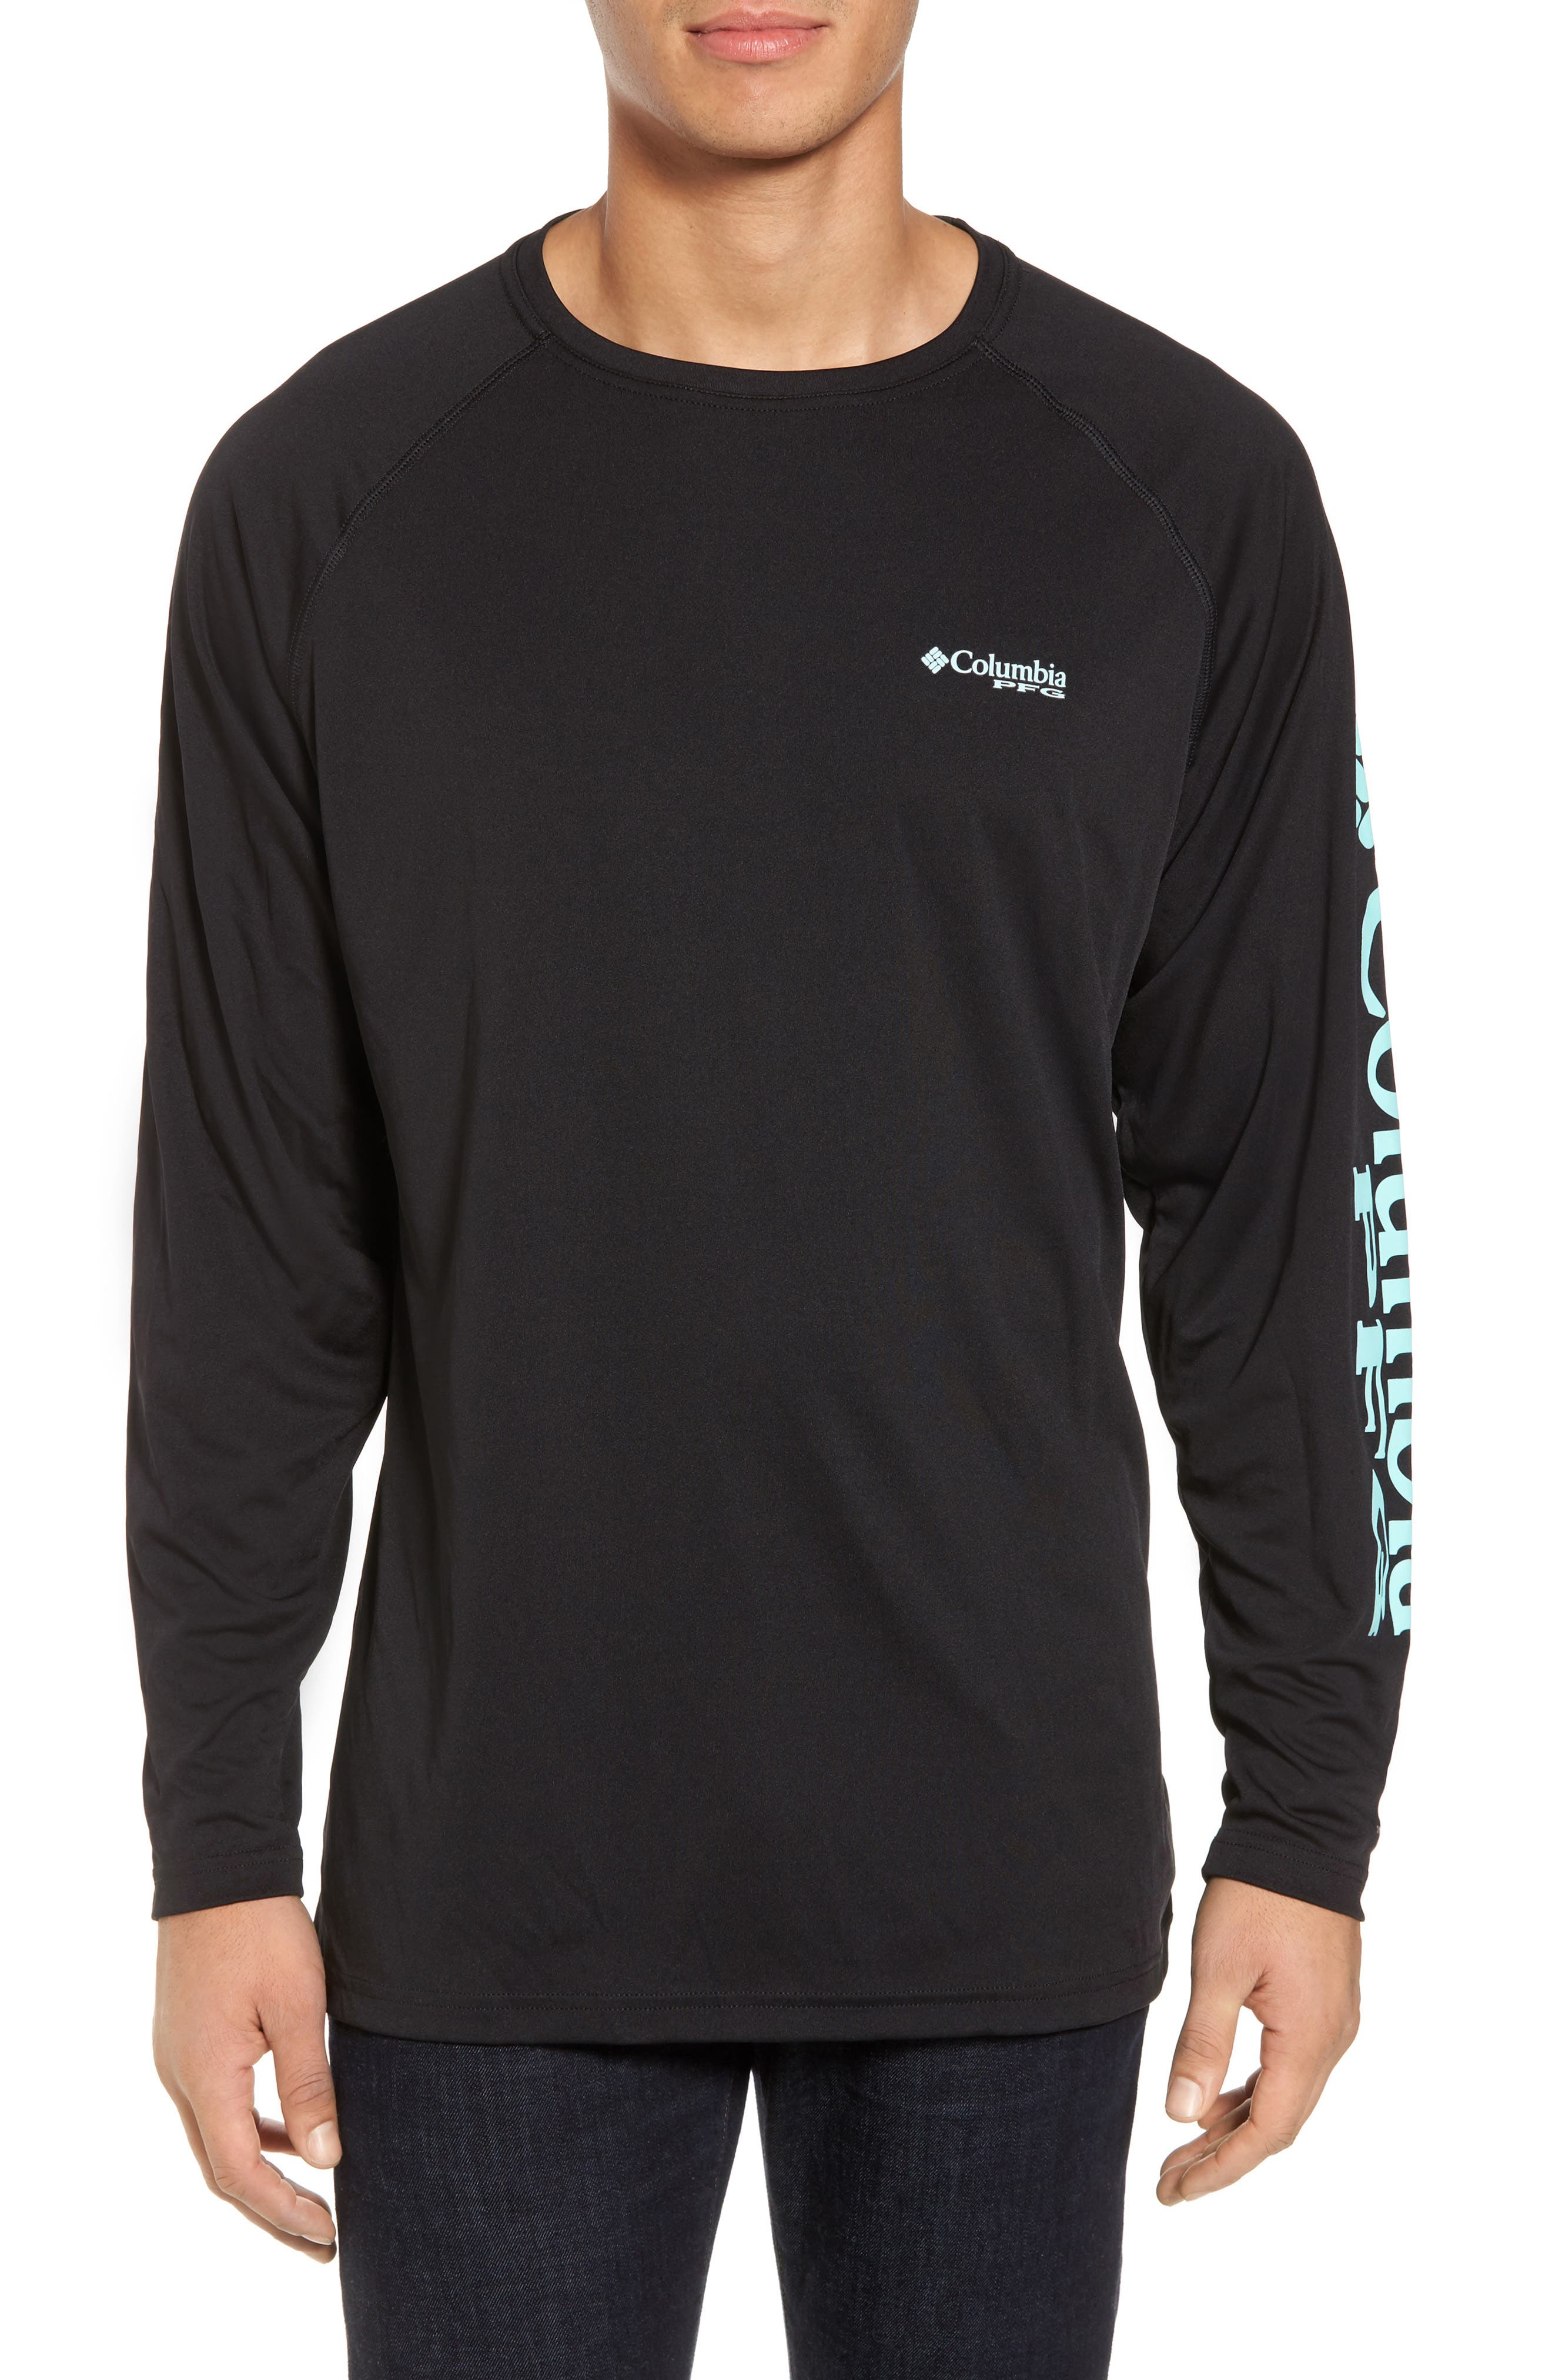 PFG Terminal Tackle Performance T-Shirt,                         Main,                         color, Black/ Gulf Stream